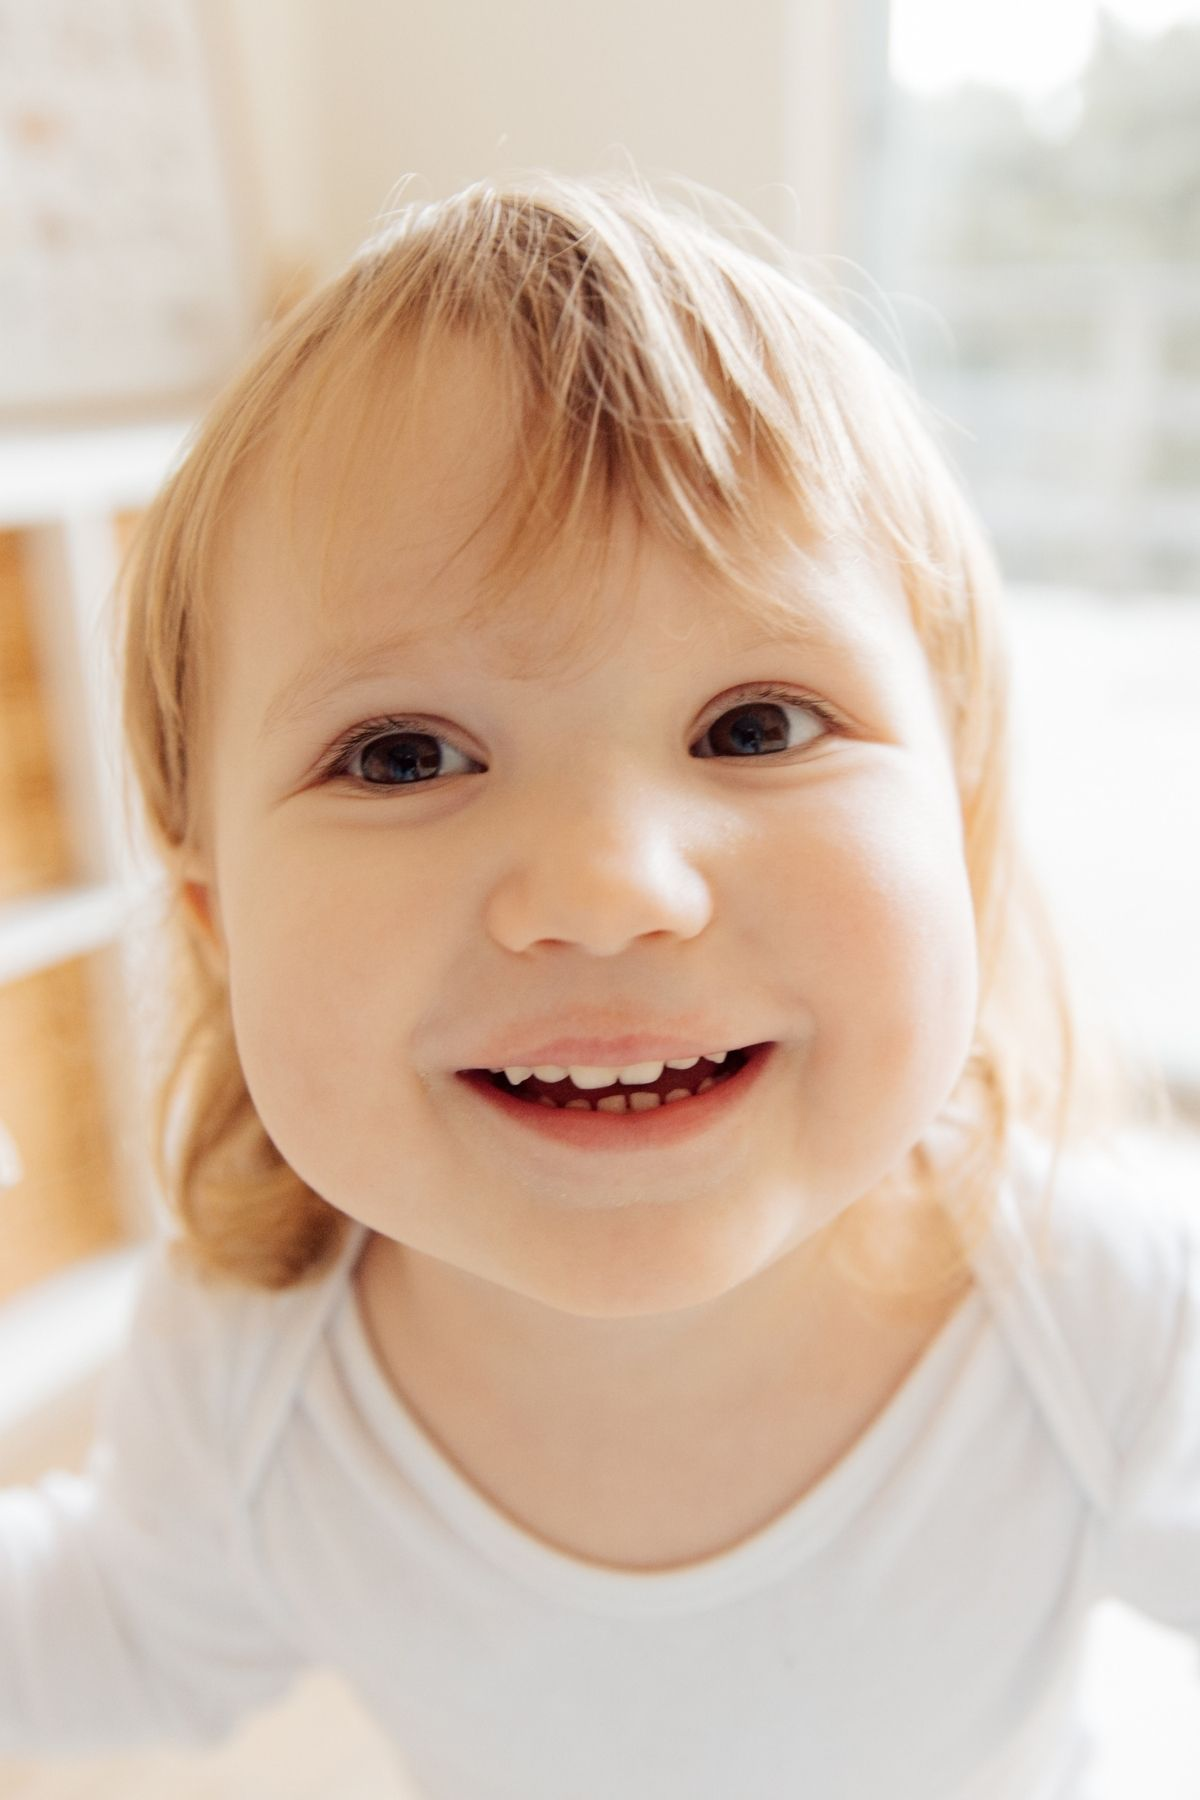 Close up photo of blonde girl with brown eyes wearing a white onesie and smiling.